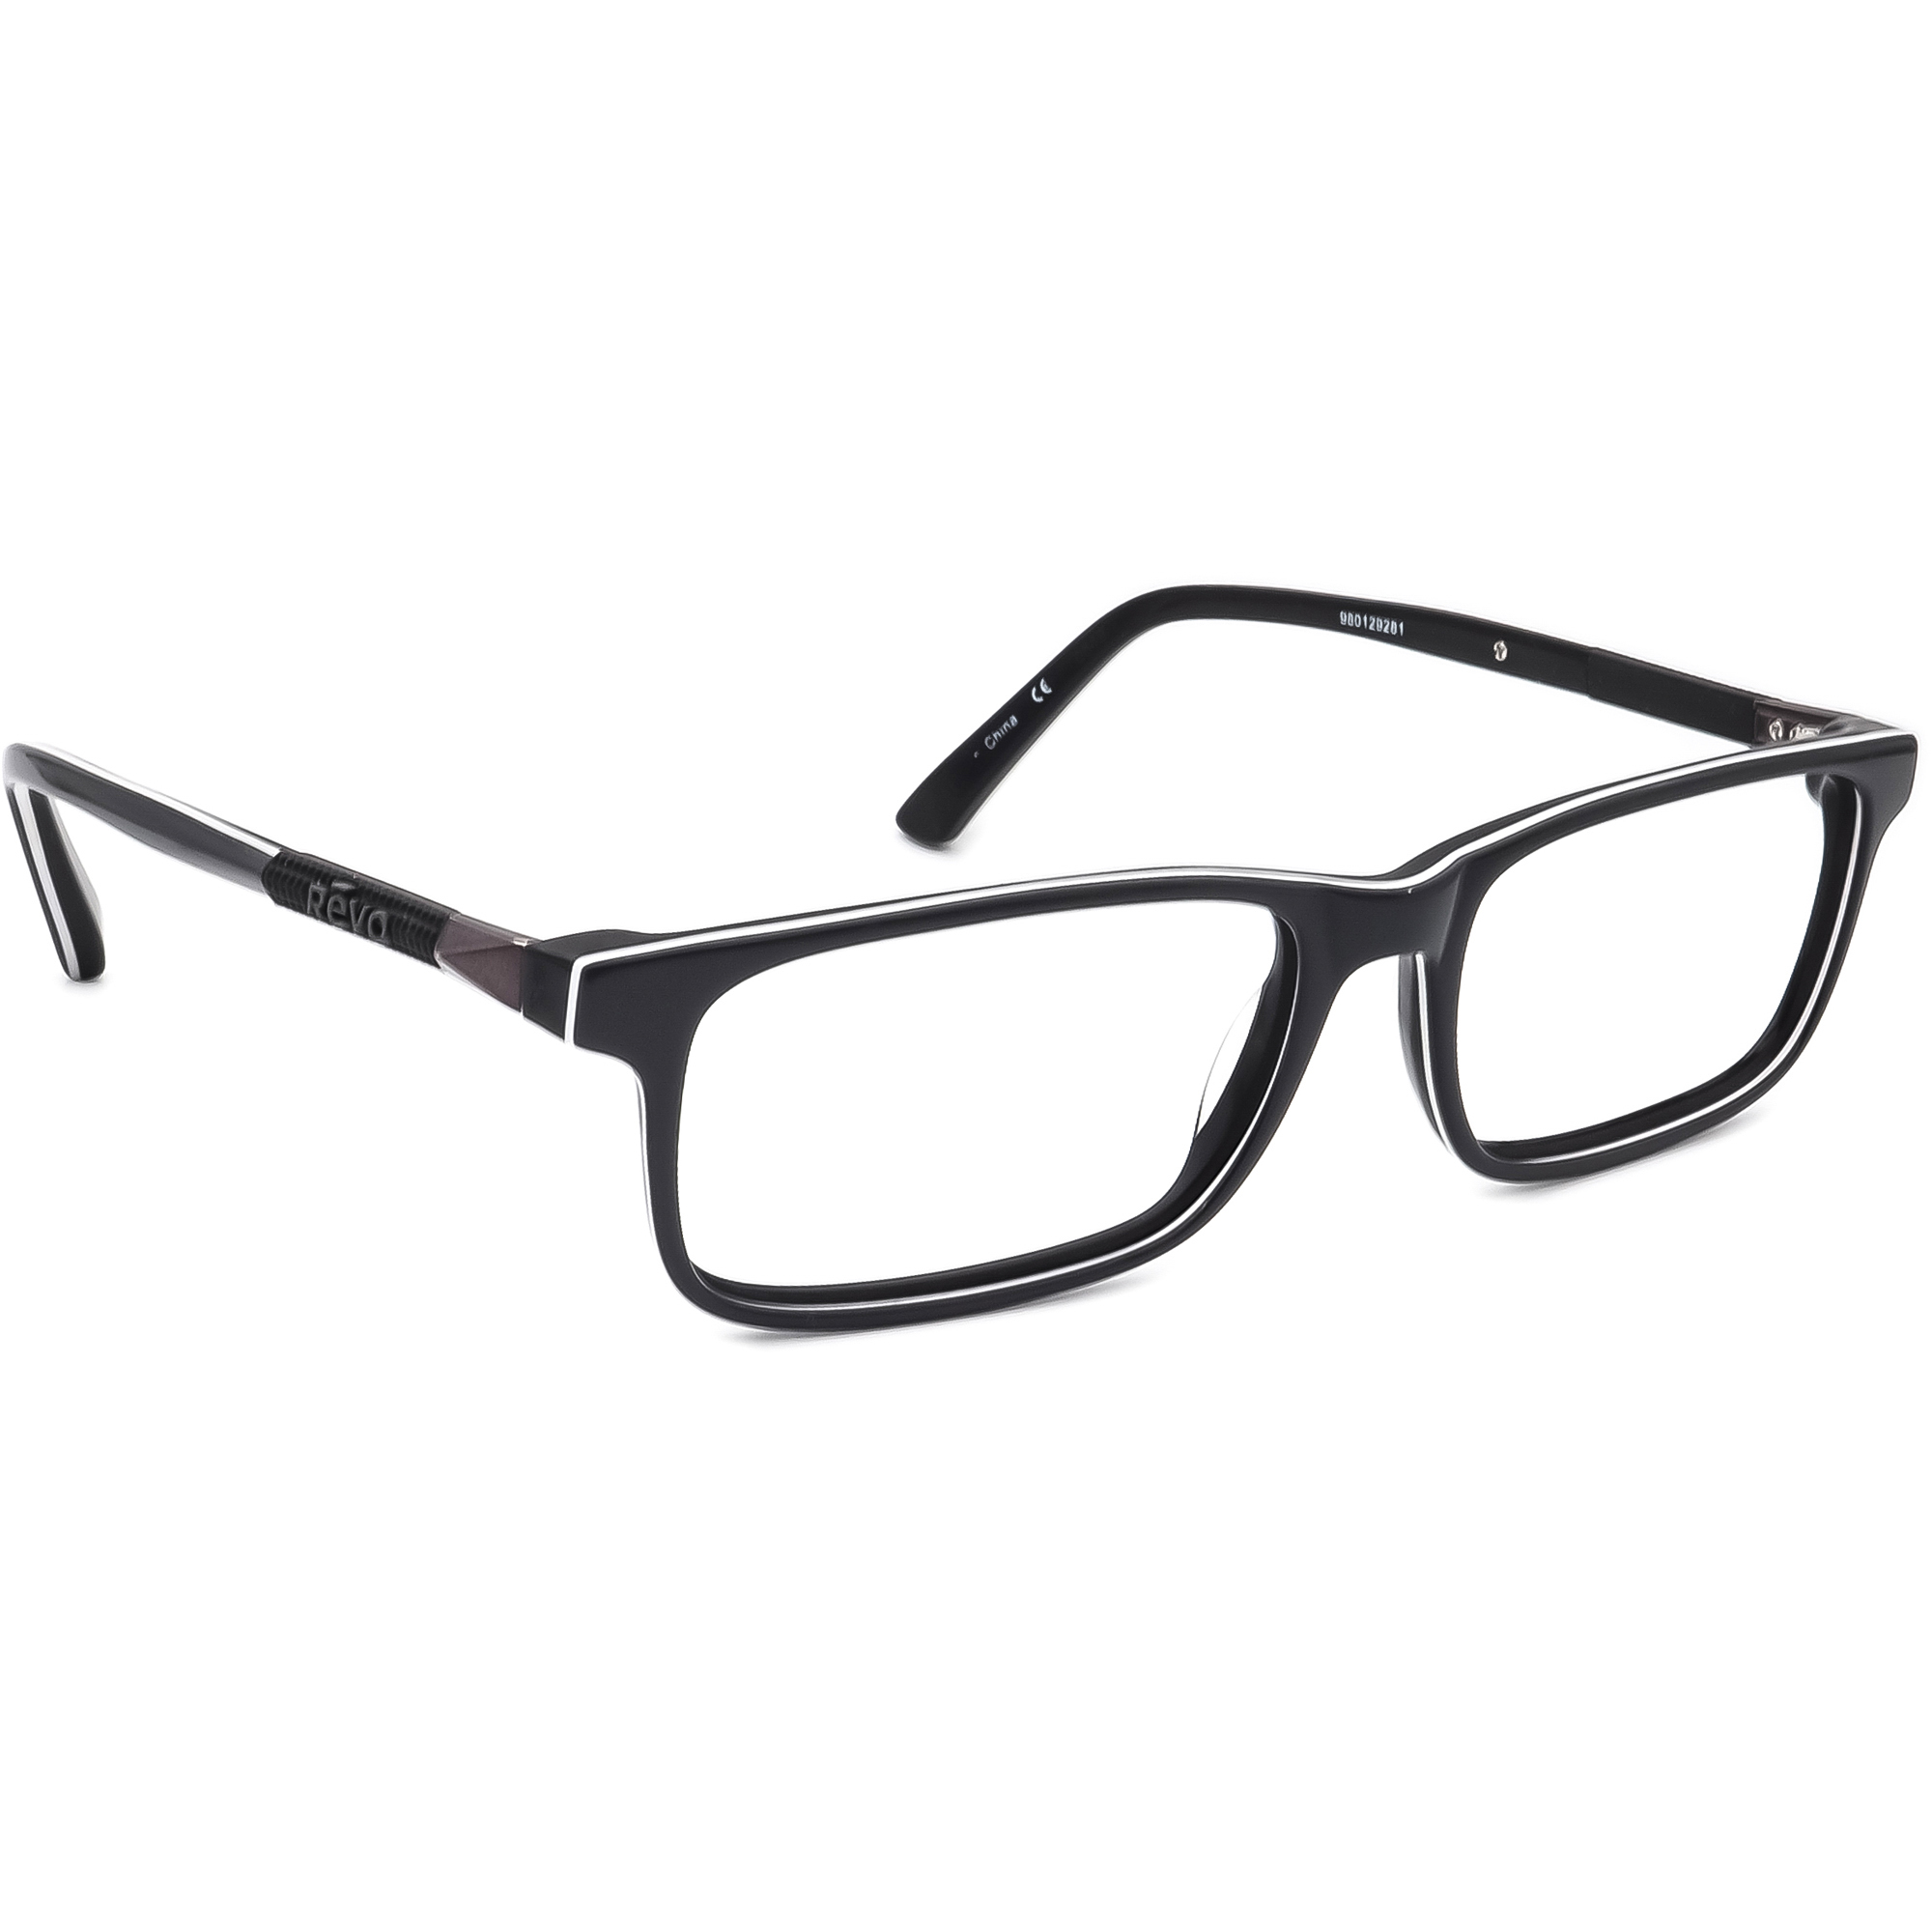 Revo RE 8017 00 Eyeglasses